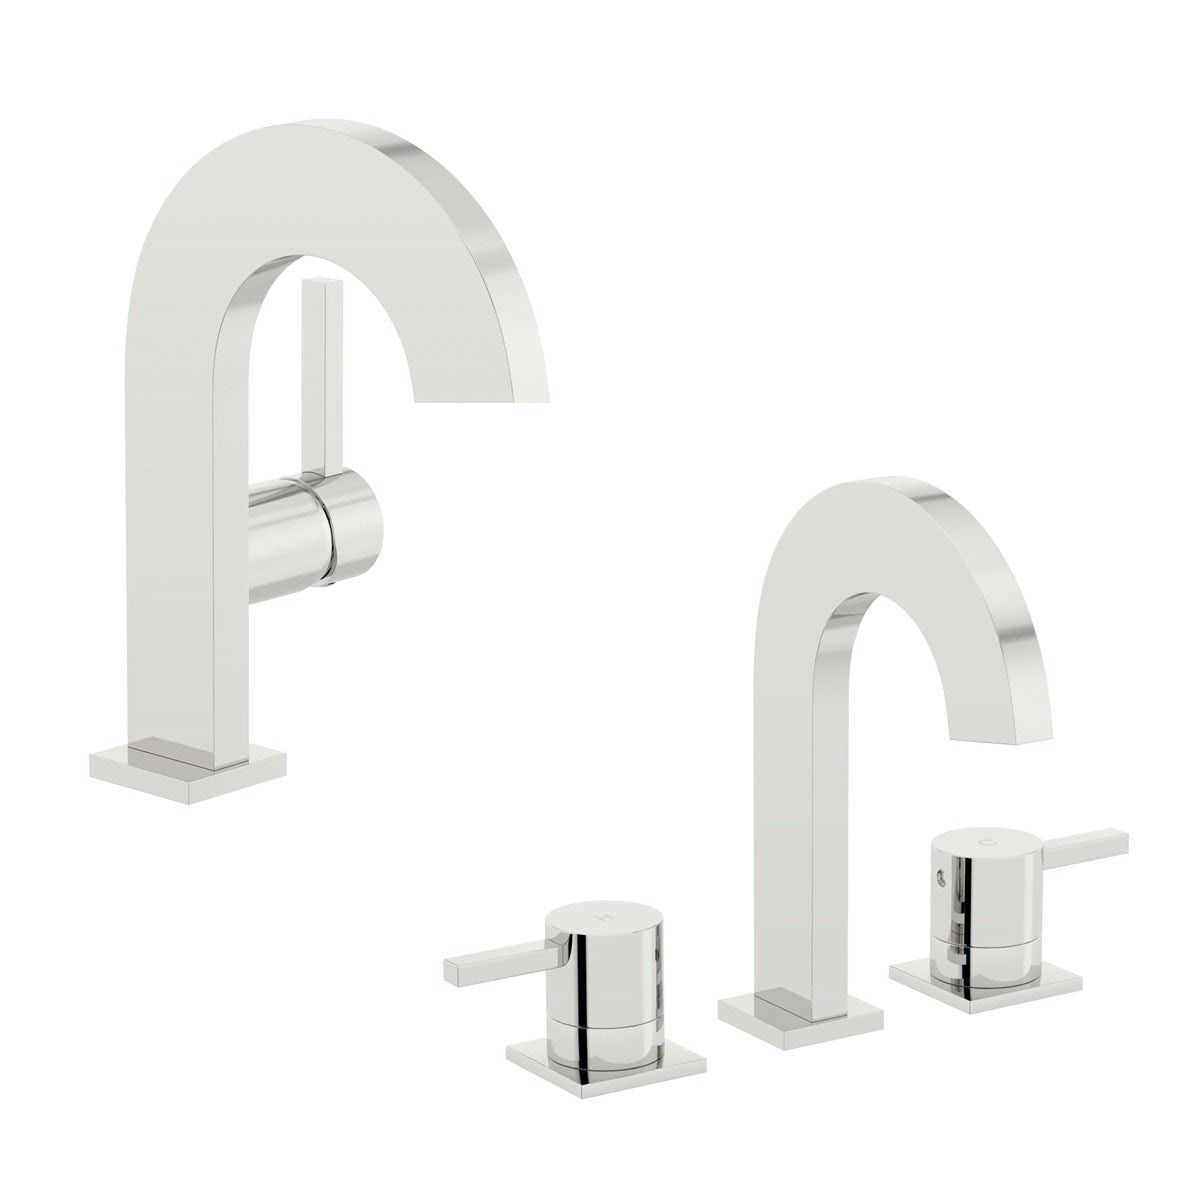 Mode Harrison basin and bath mixer tap pack